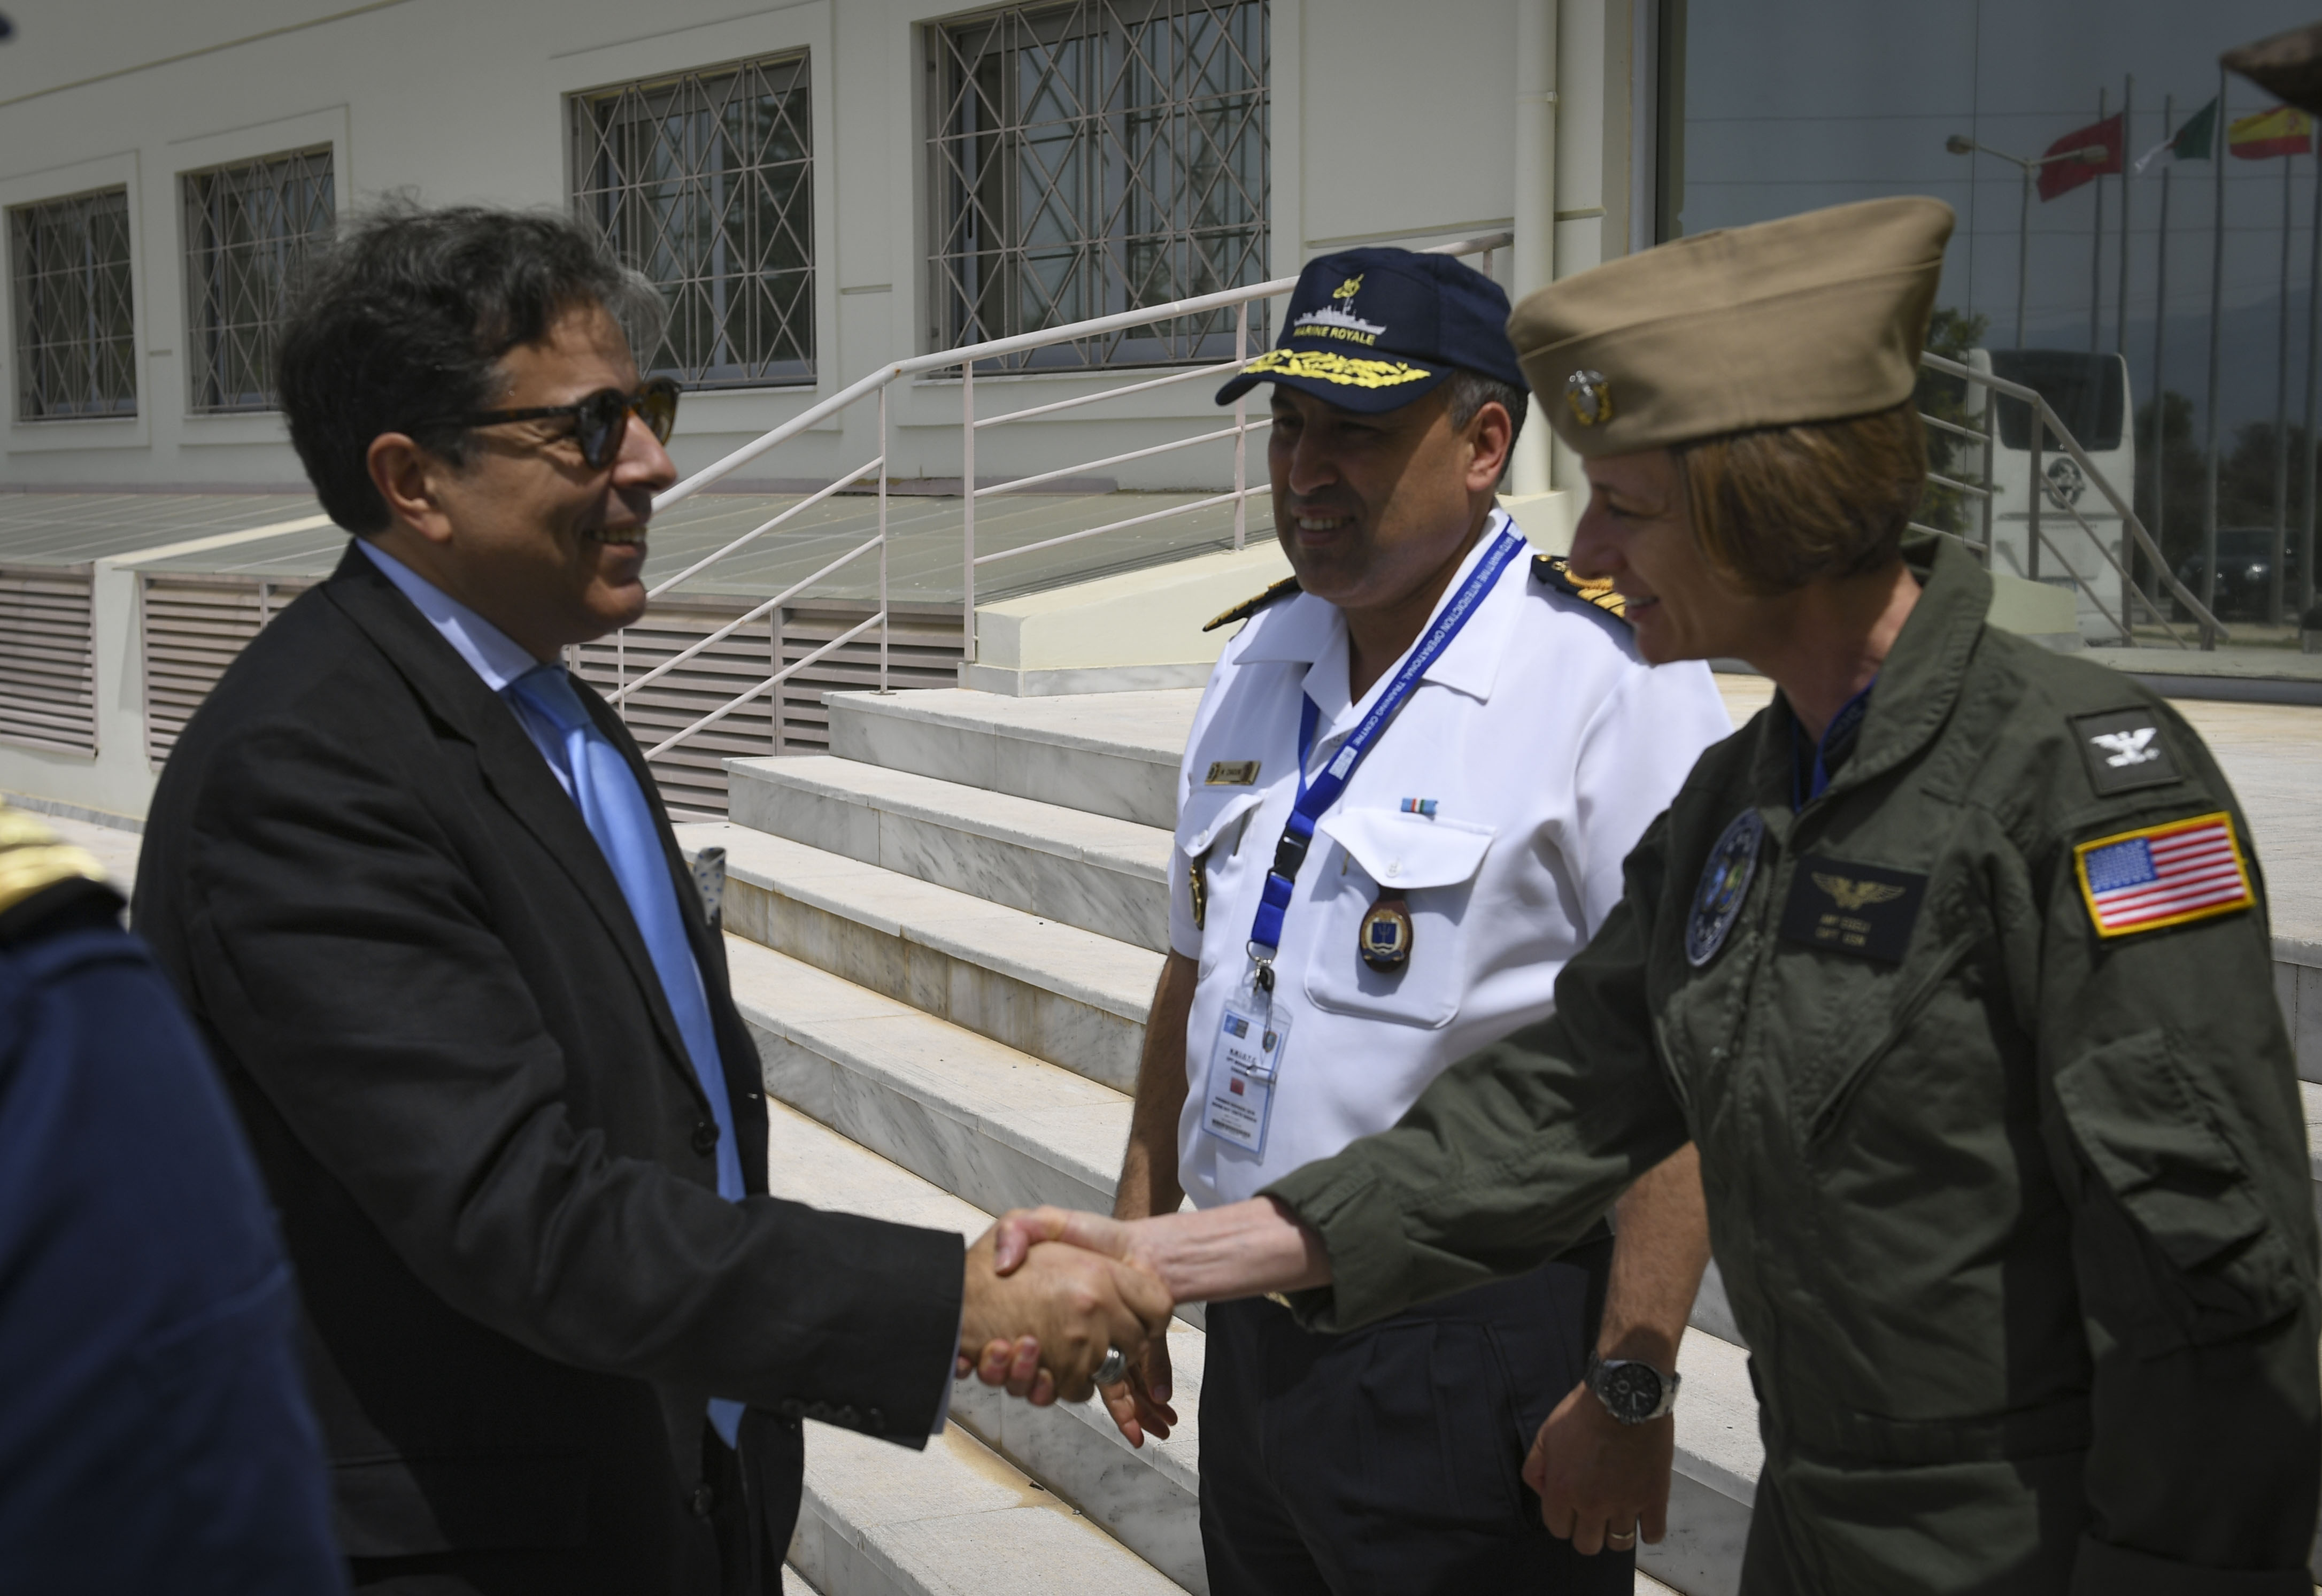 SOUDA BAY, Greece (April 30, 2018) Ambassador of the People's Democratic Republic of Algeria to Greece, Noureddine Bardad-Daidj, arrives in Souda Bay, Greece, for exercise Phoenix Express 2018, April 30.  Phoenix Express is sponsored by U.S. Africa Command and facilitated by U.S. Naval Forces Europe-Africa/U.S. 6th Fleet, and is designed to improve regional cooperation, increase maritime domain awareness information sharing practices, and operational capabilities to enhance efforts to achieve safety and security in the Mediterranean sea. (U.S. Navy photo by Mass Communication Specialist 2nd Class Ryan U. Kledzik/Released)